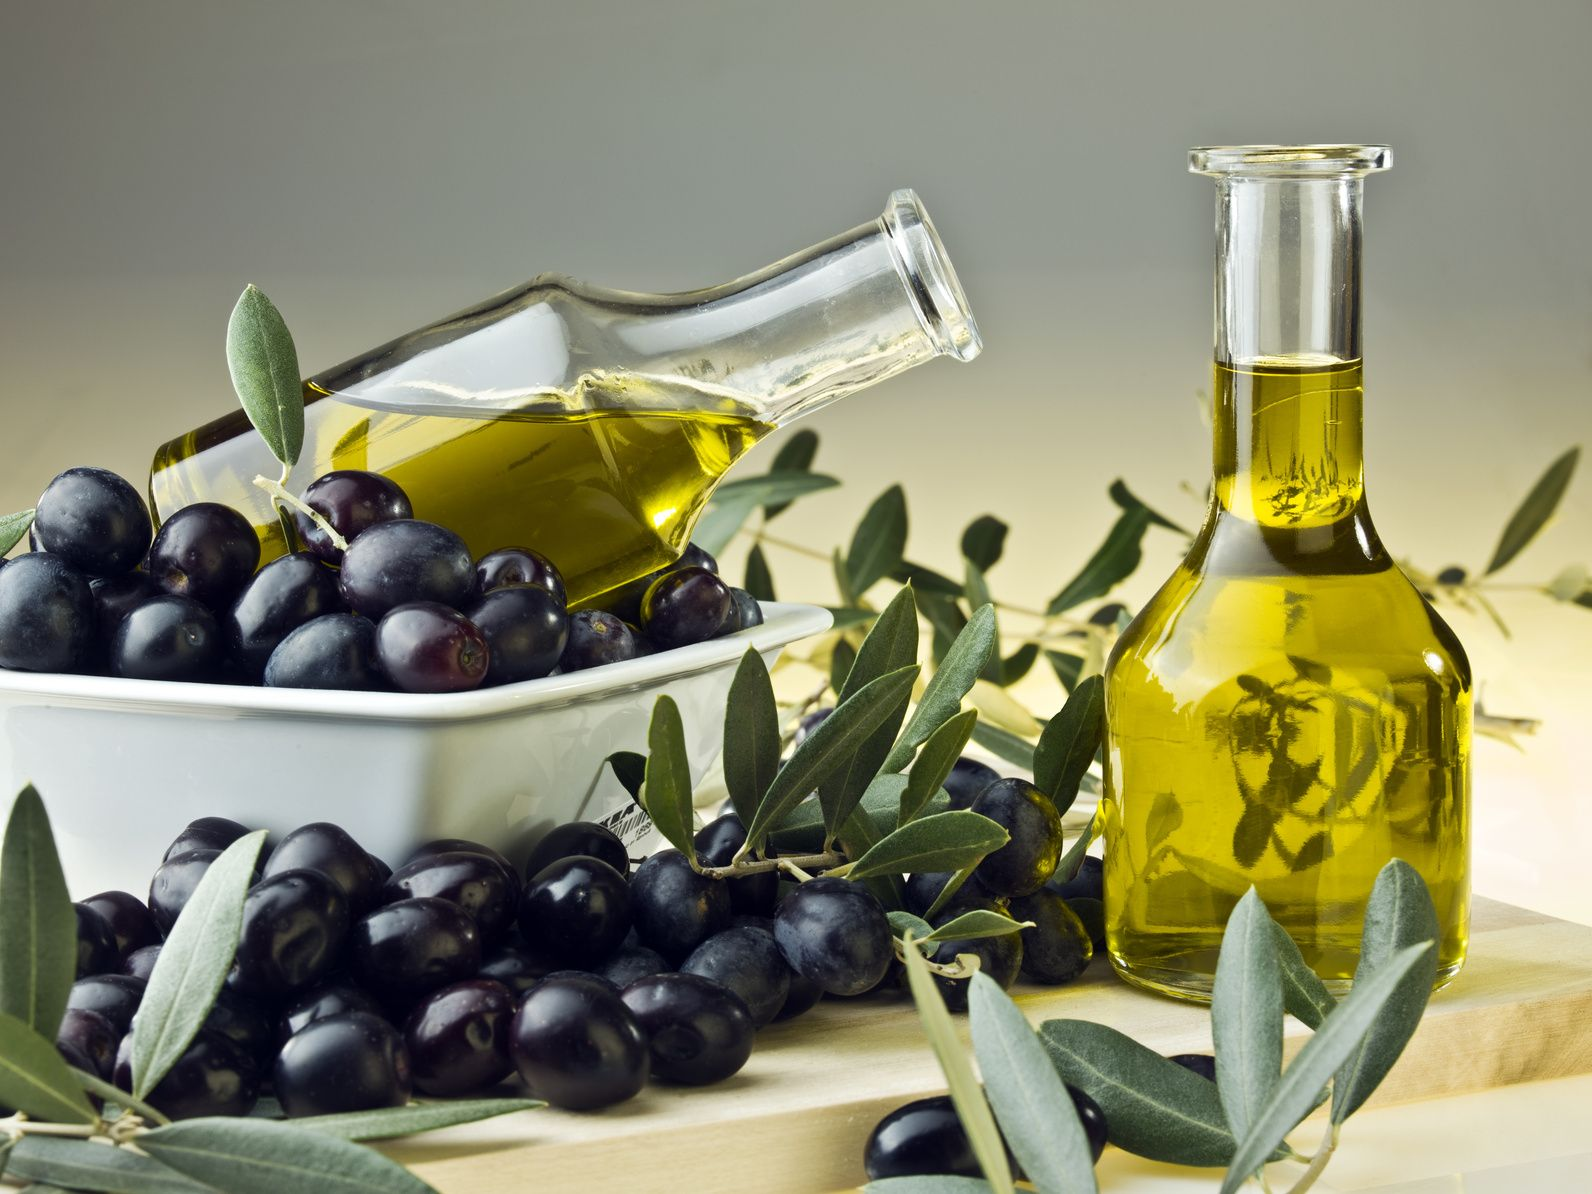 Healthy Fats Olive, Healthy oils, Real olive oil brands